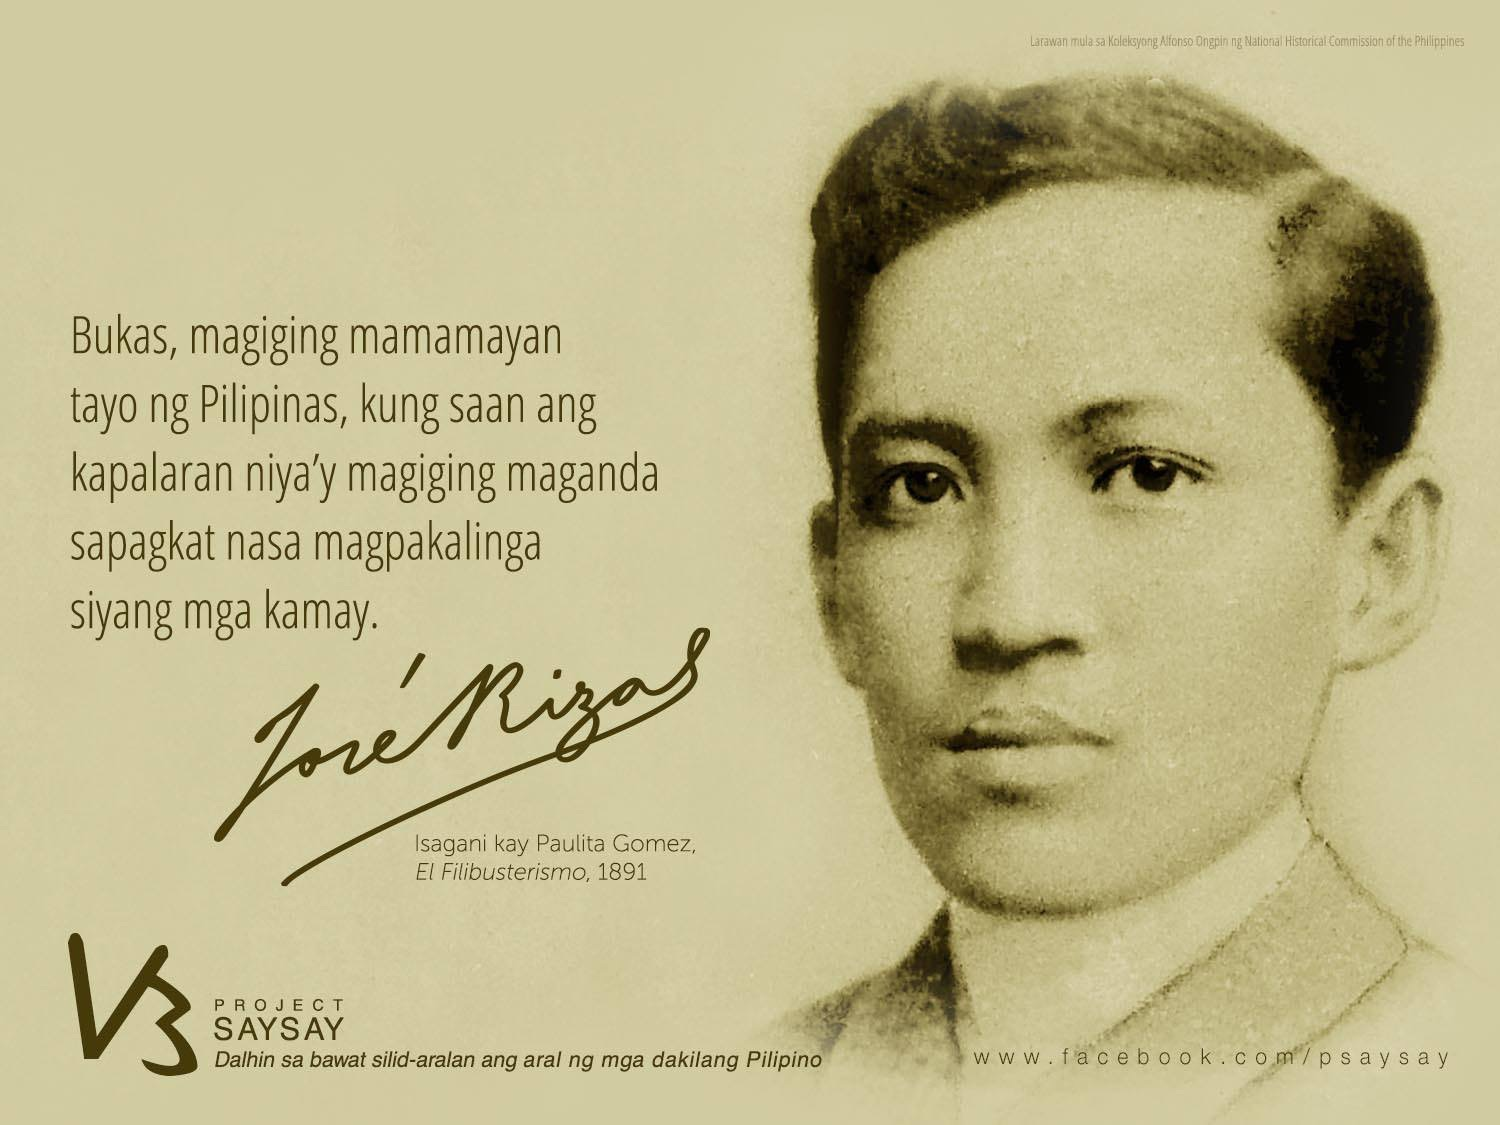 dr. jose rizal essays Free essays on dr jose rizal for students use our papers to help you with yours 1 - 30.